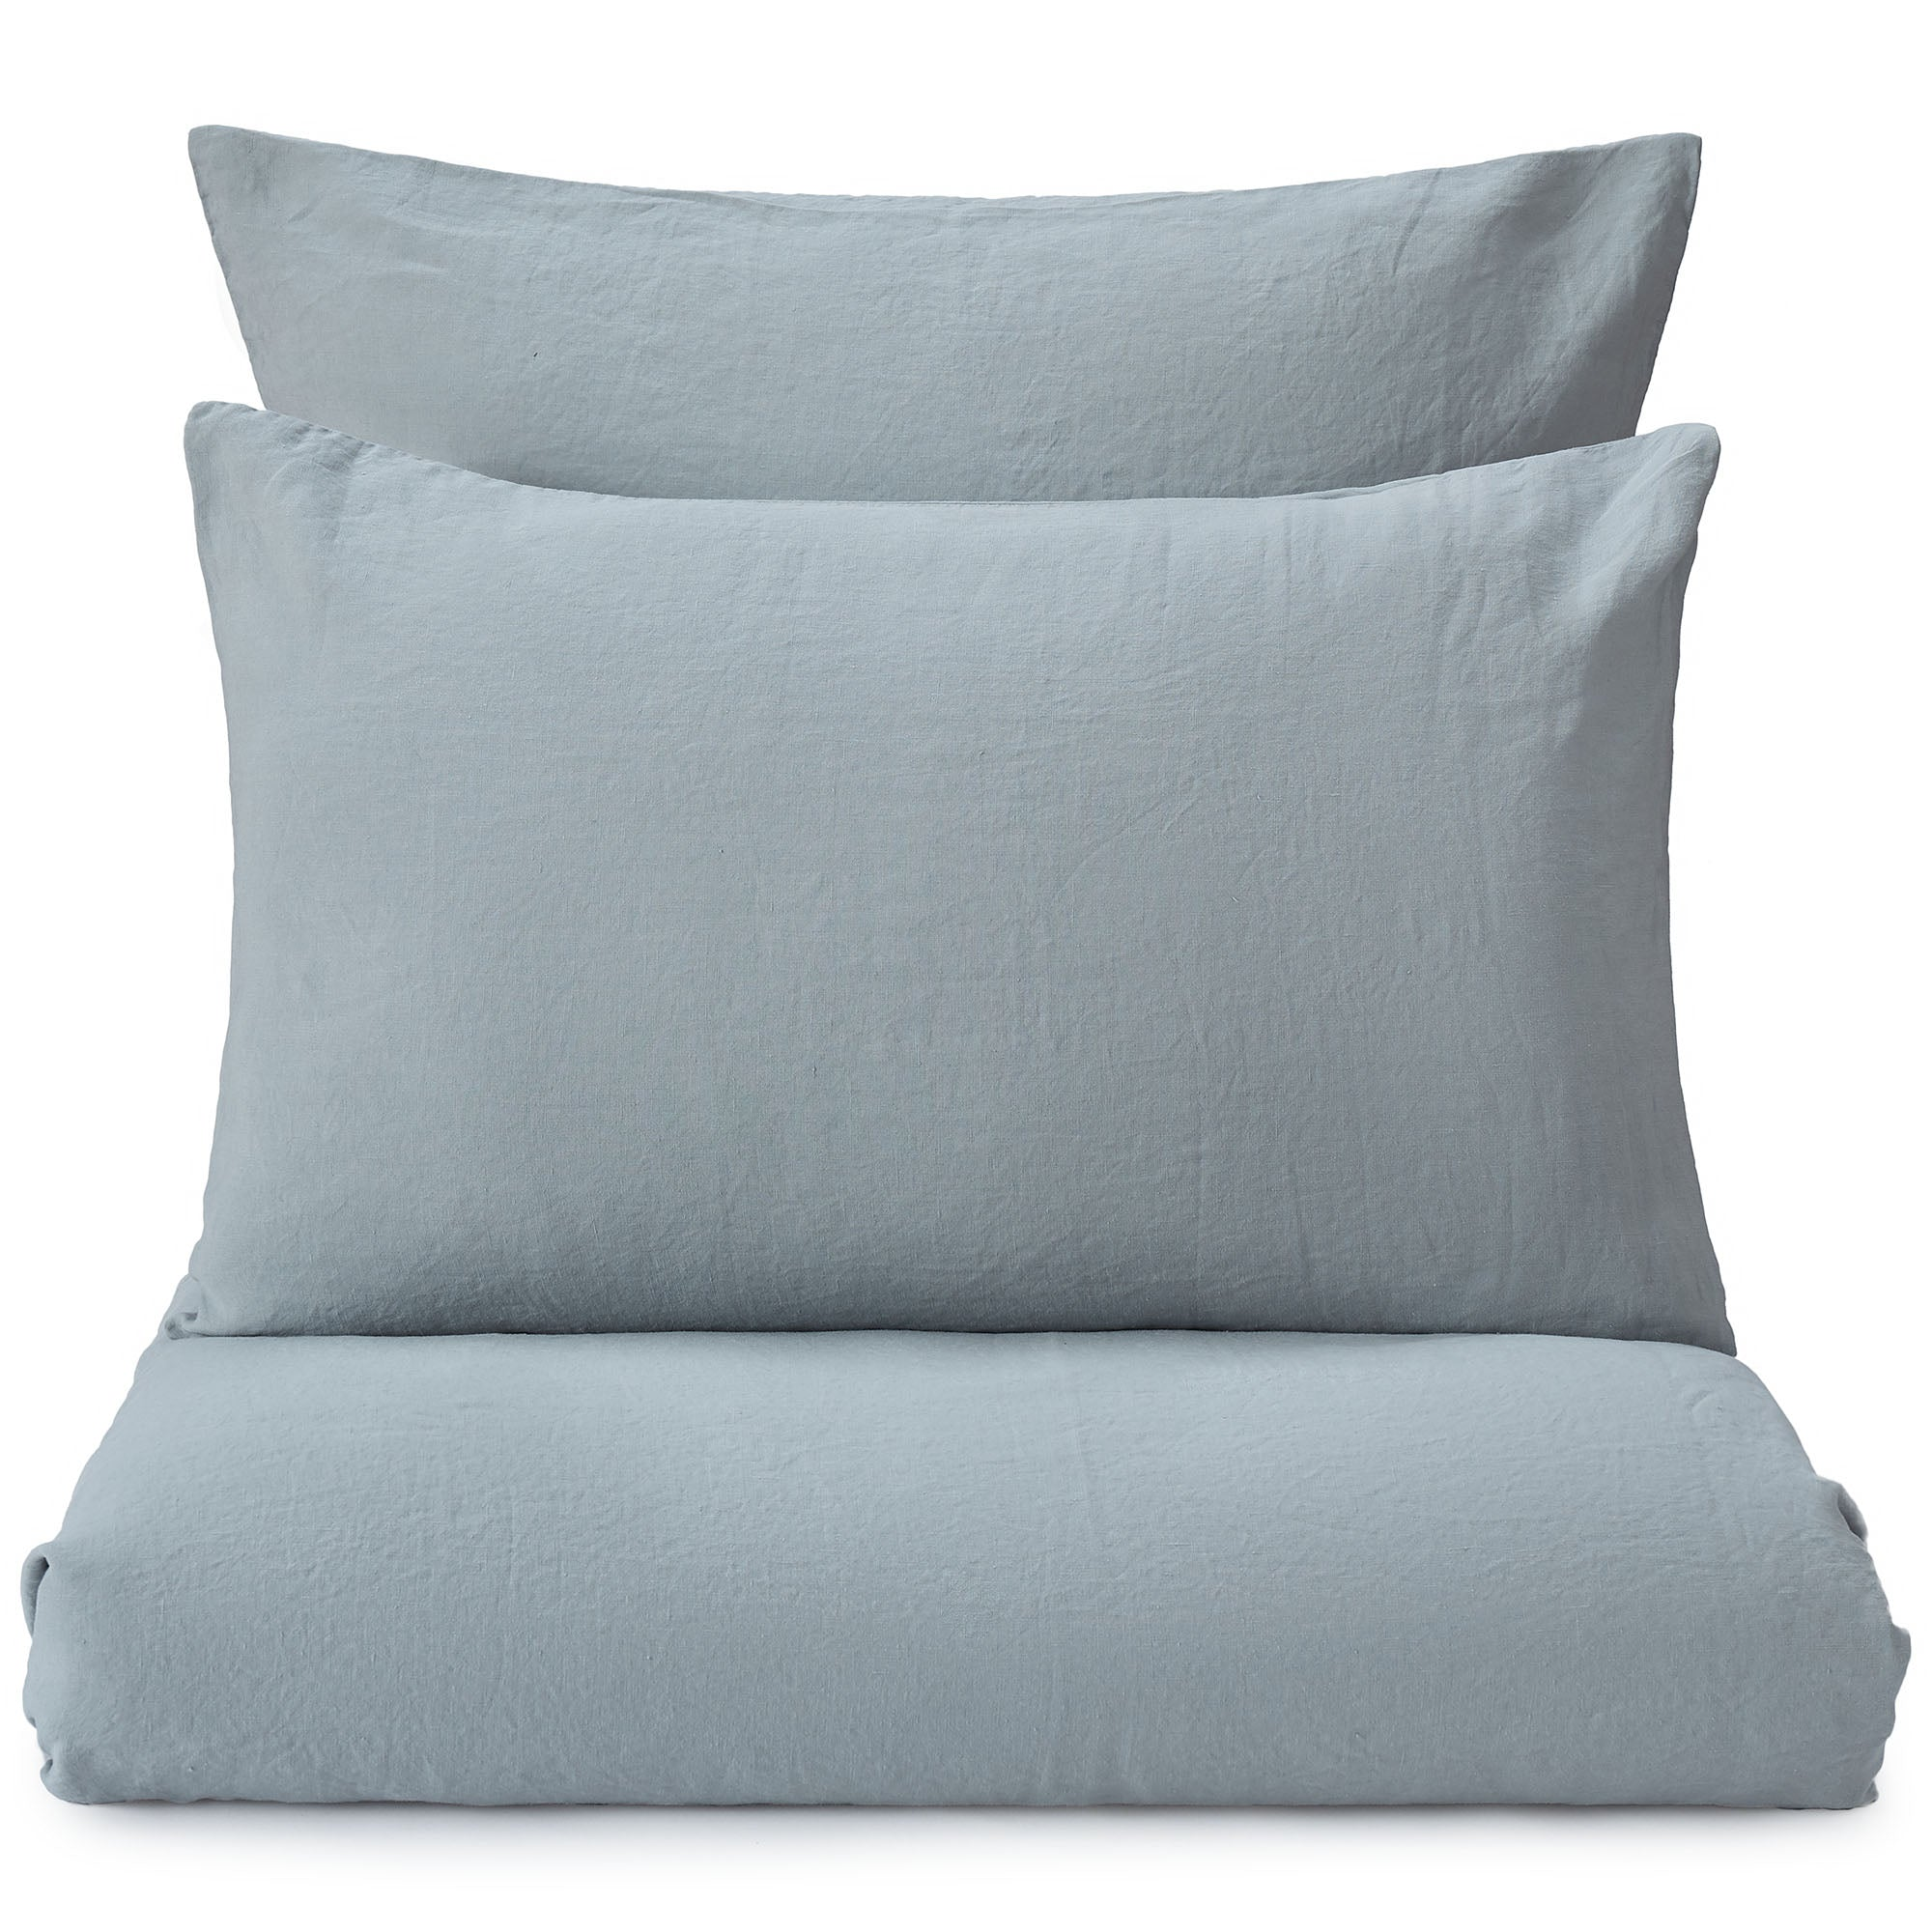 Mafalda Pillowcase [Light green grey]